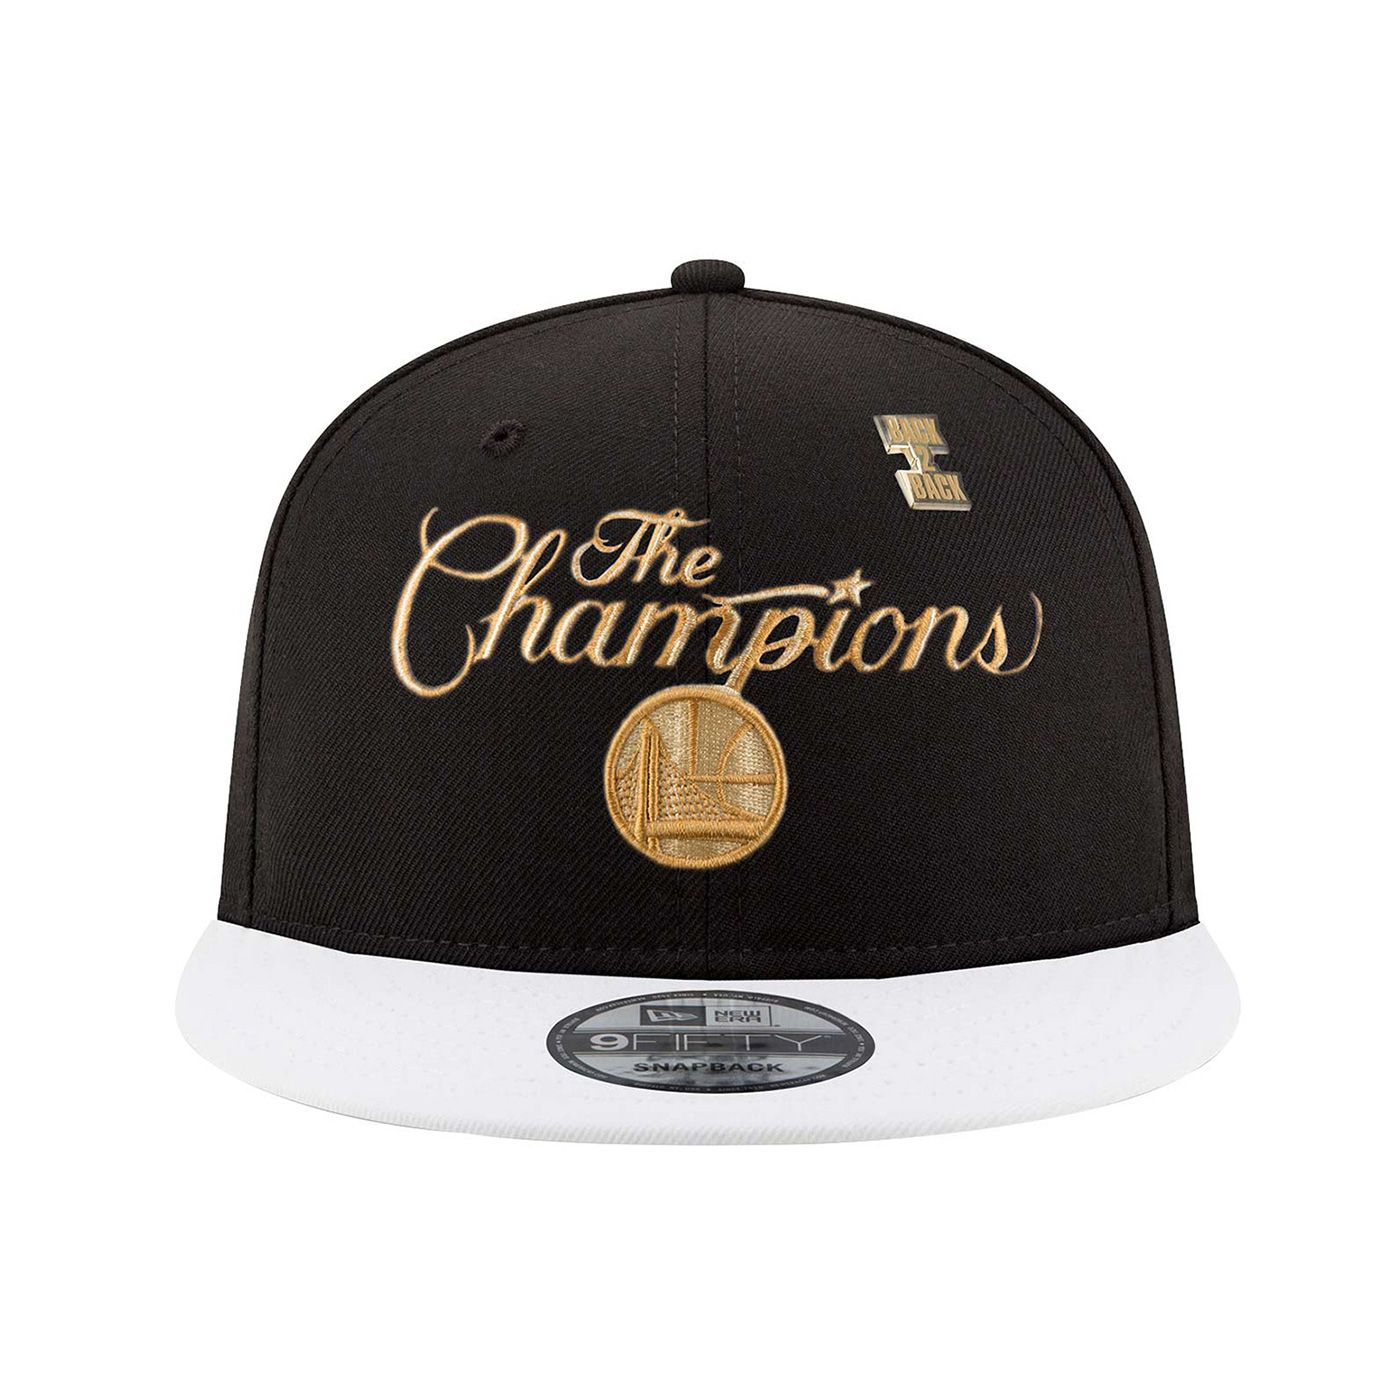 42a3644c Golden State Warriors New Era 9FIFTY Back to Back Champions Trophy Ring  Banner Snapback Cap - Black - Golden State Warriors - Official Online Store